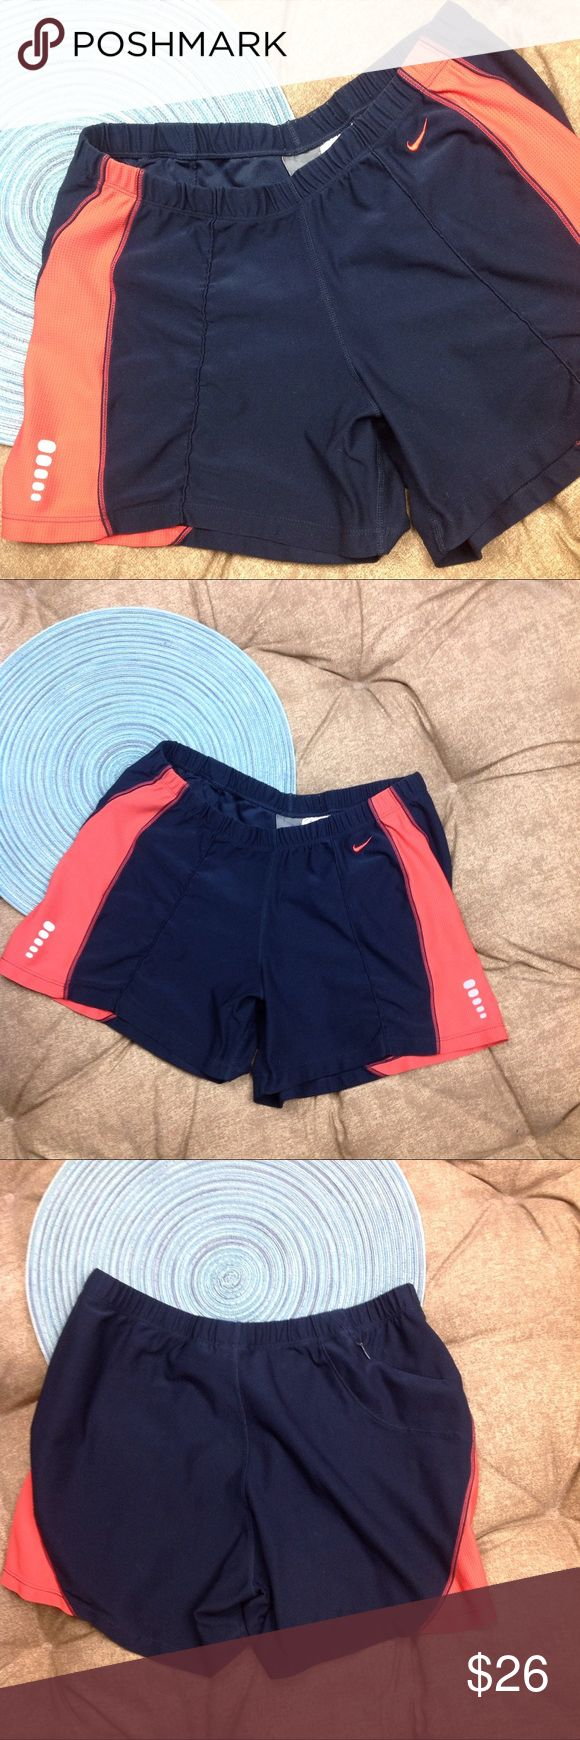 Nike Dri Fit Shorts SZ Small 4-6 Blue Orange Great condition Nike Dri Fit Shorts SZ Small 4-6 Blue Orange zip back pocket poly/spandex 13 inches across elastic waist 4 inch inseam 9 1/2 inch rise Nike Shorts